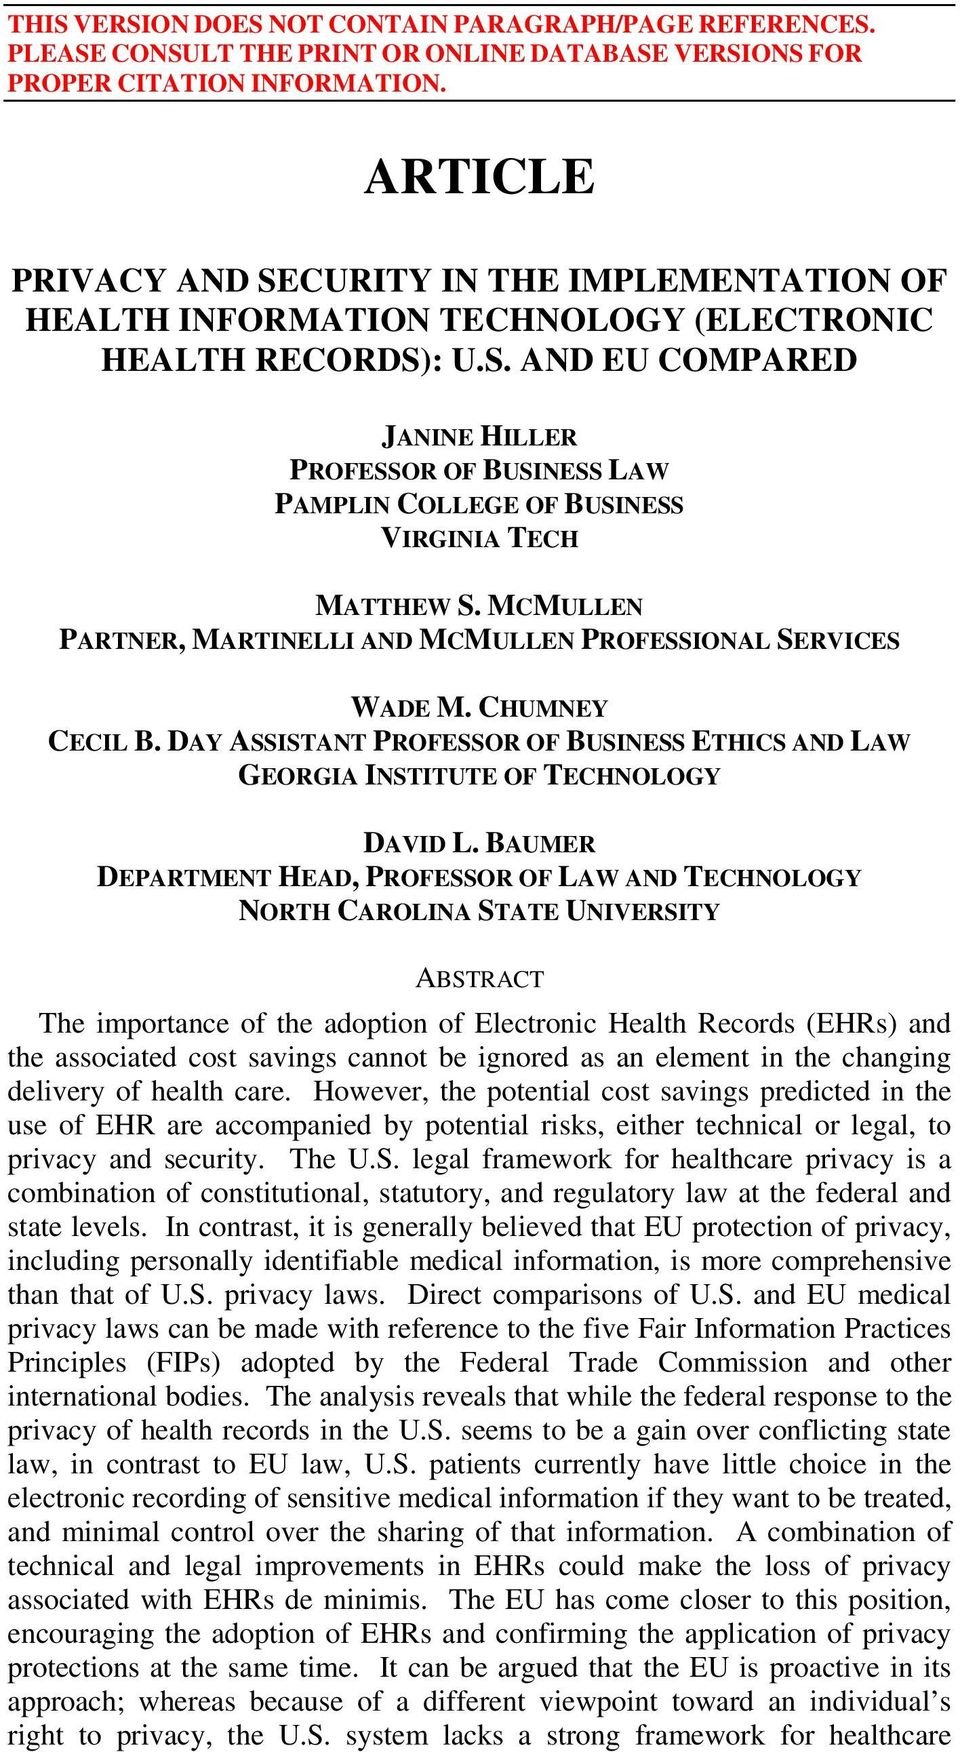 BAUMER DEPARTMENT HEAD, PROFESSOR OF LAW AND TECHNOLOGY NORTH CAROLINA STATE UNIVERSITY ABSTRACT The importance of the adoption of Electronic Health Records (EHRs) and the associated cost savings